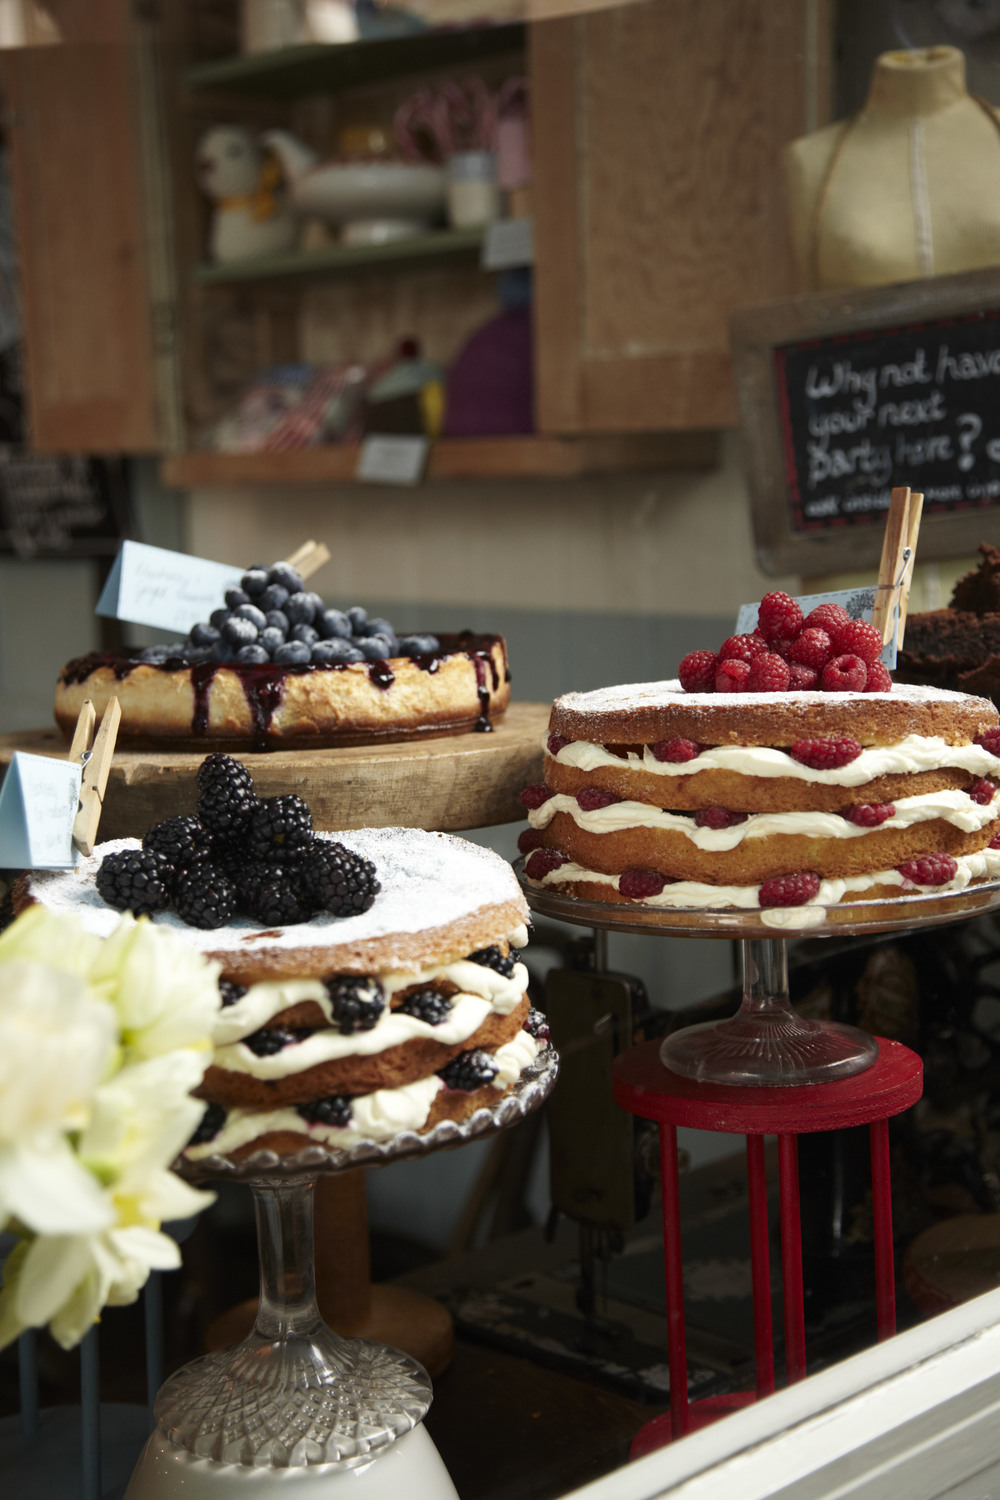 A selection of cakes at The Haberdashery